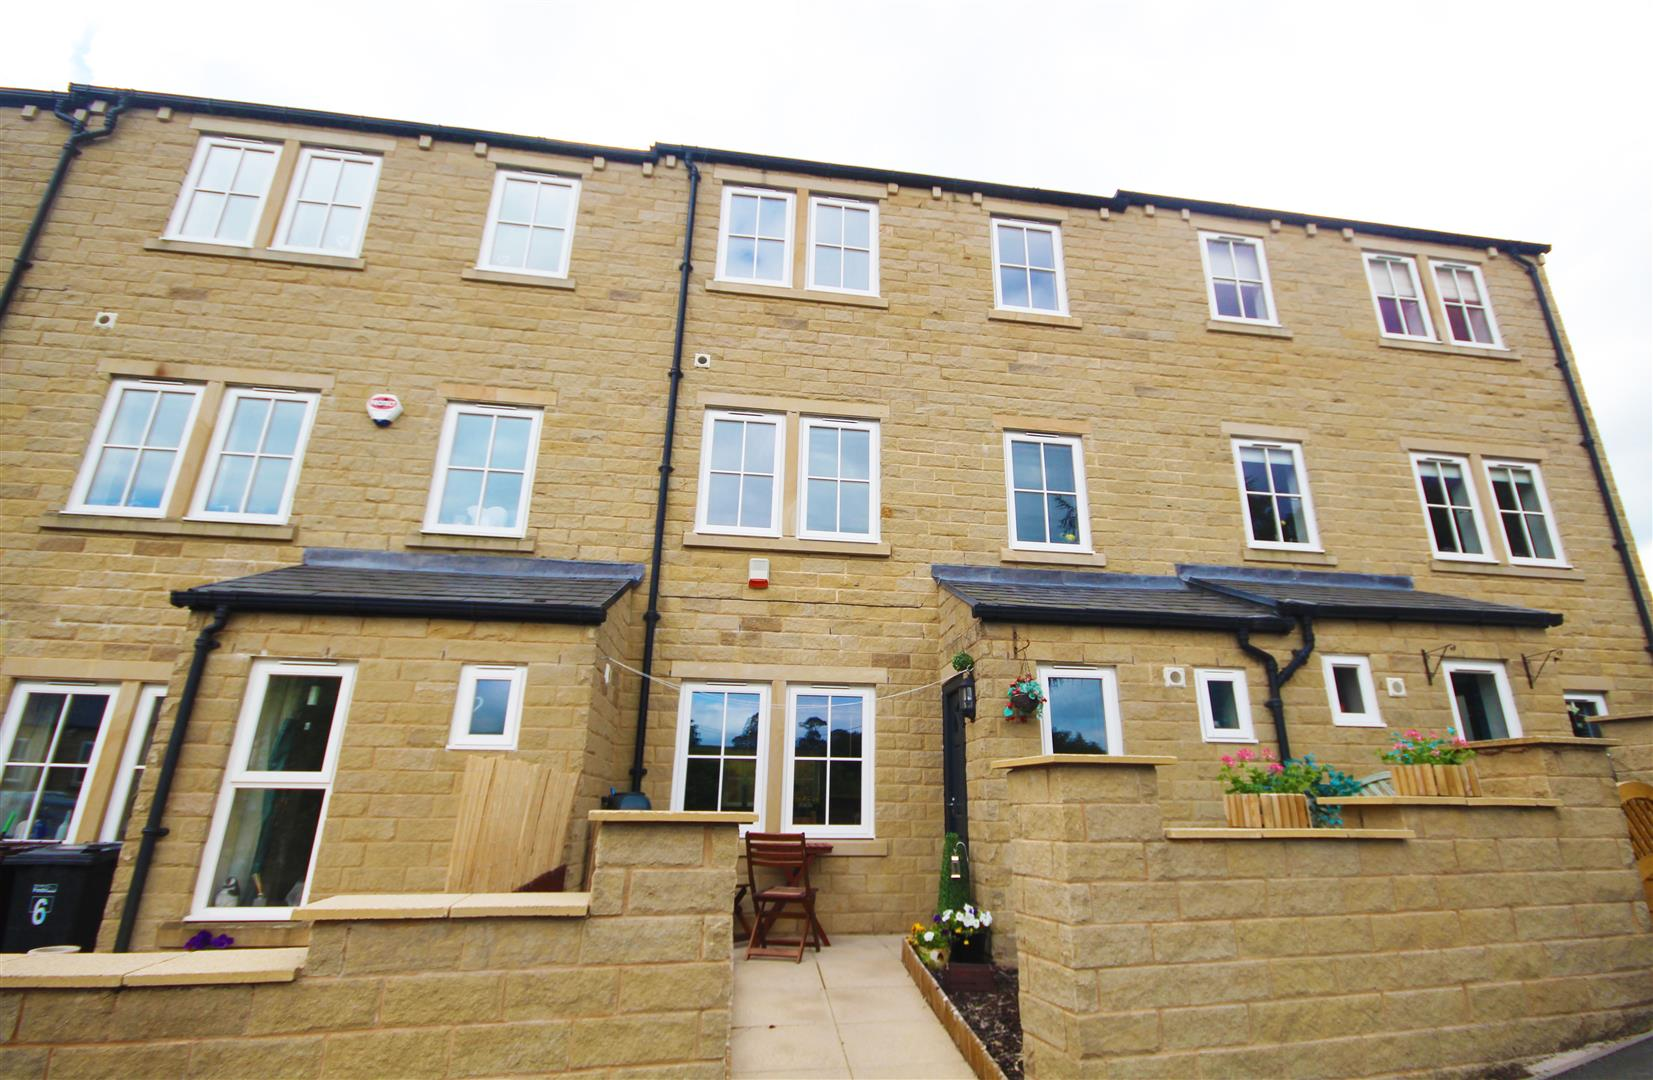 4 bedroom townhouse house For Sale in Trawden, Colne - Property photograph